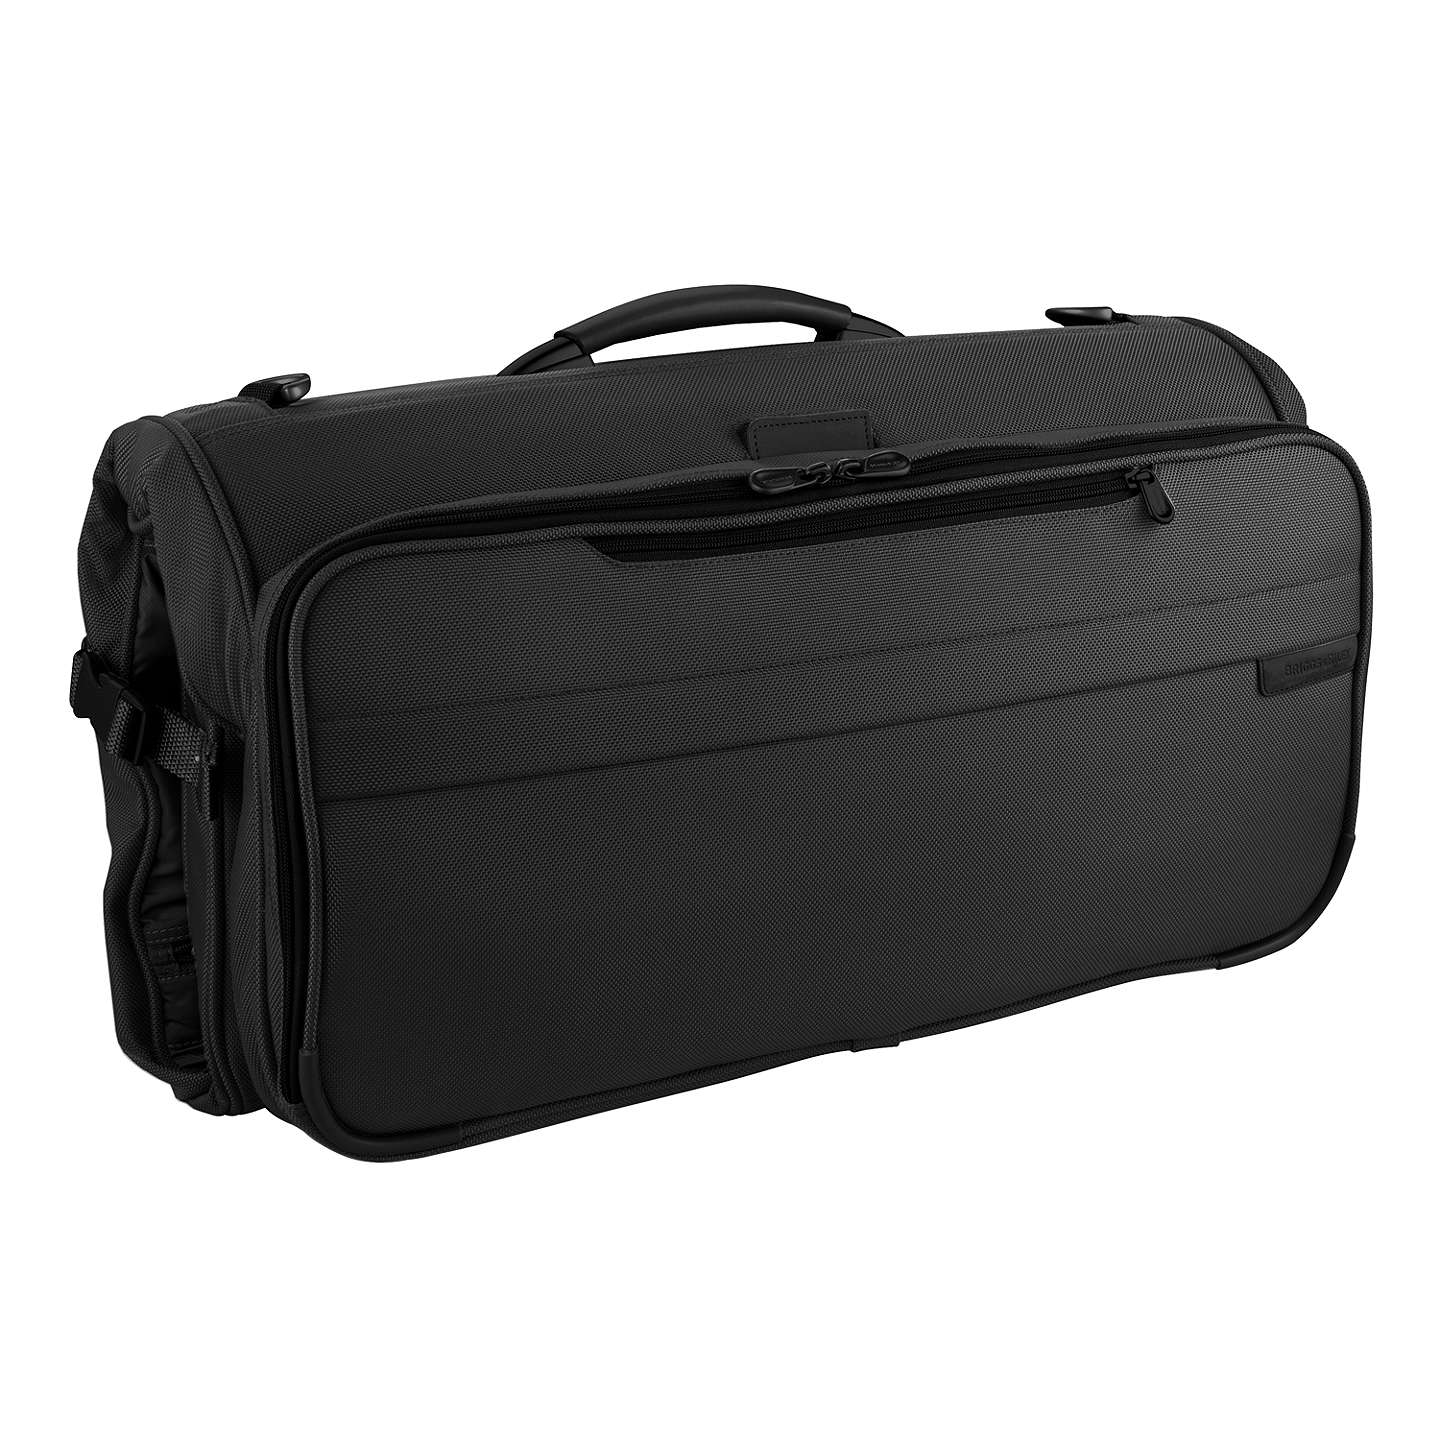 Briggs riley compact suit and garment bag black at john for Wedding dress garment bag for air travel